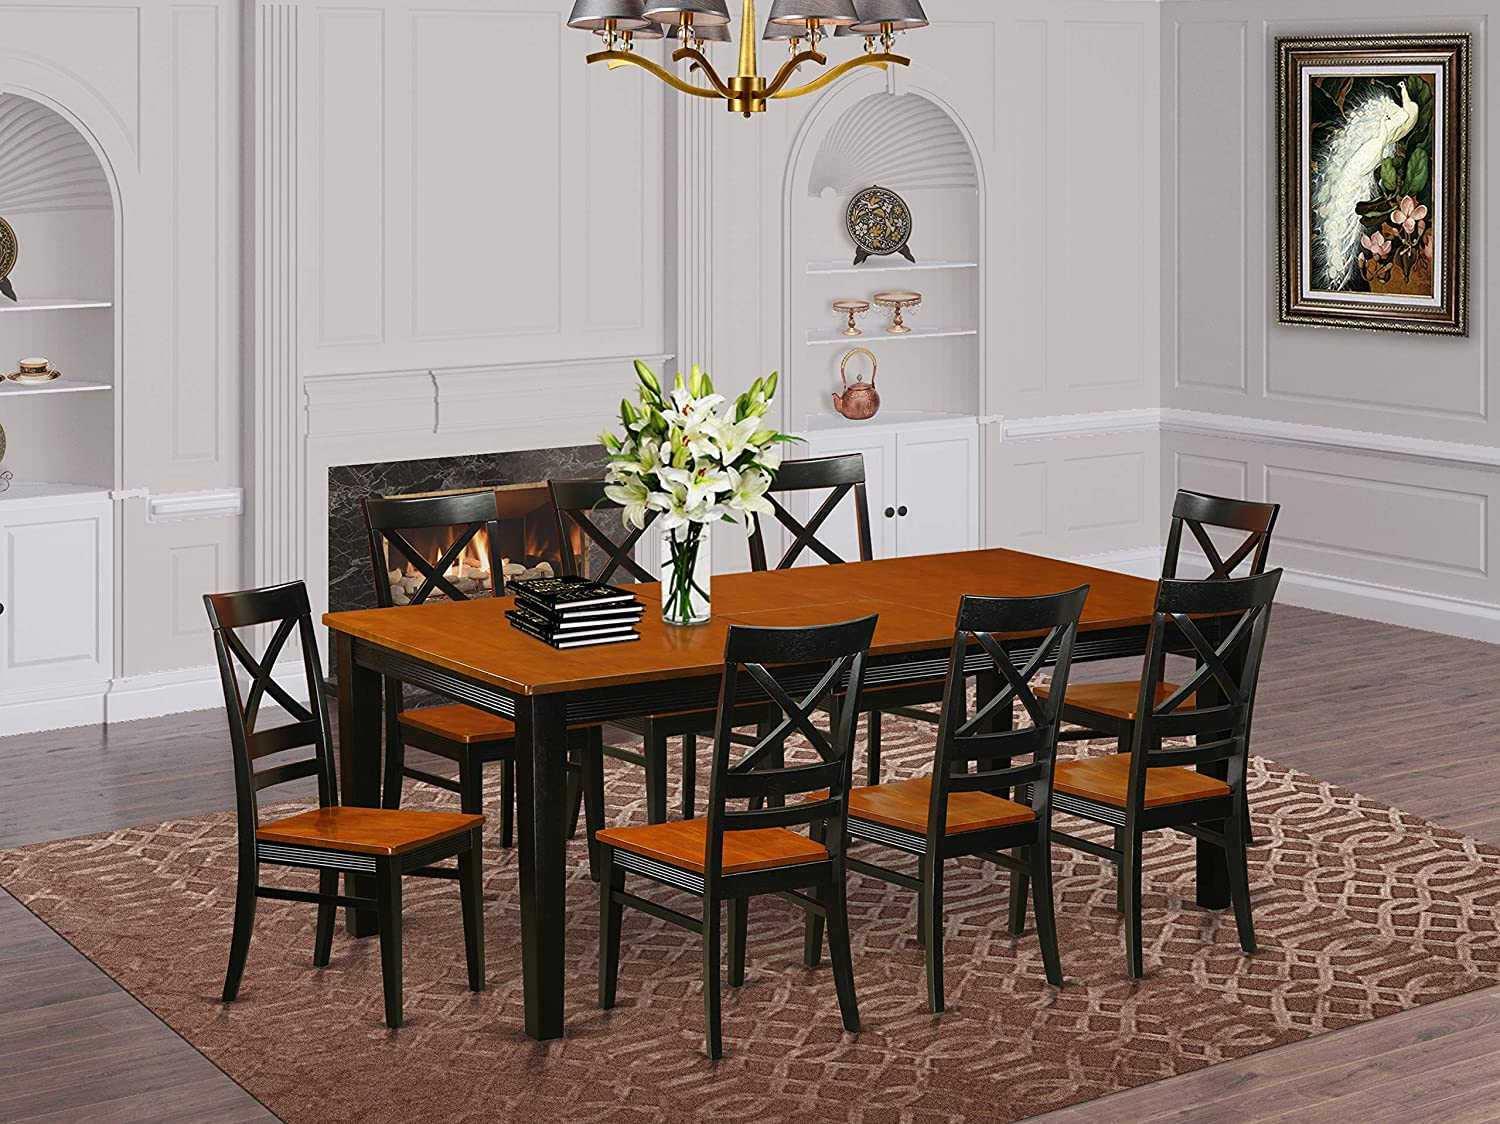 9 Pc Dining room set Dining Table and 9 Dining Chairs